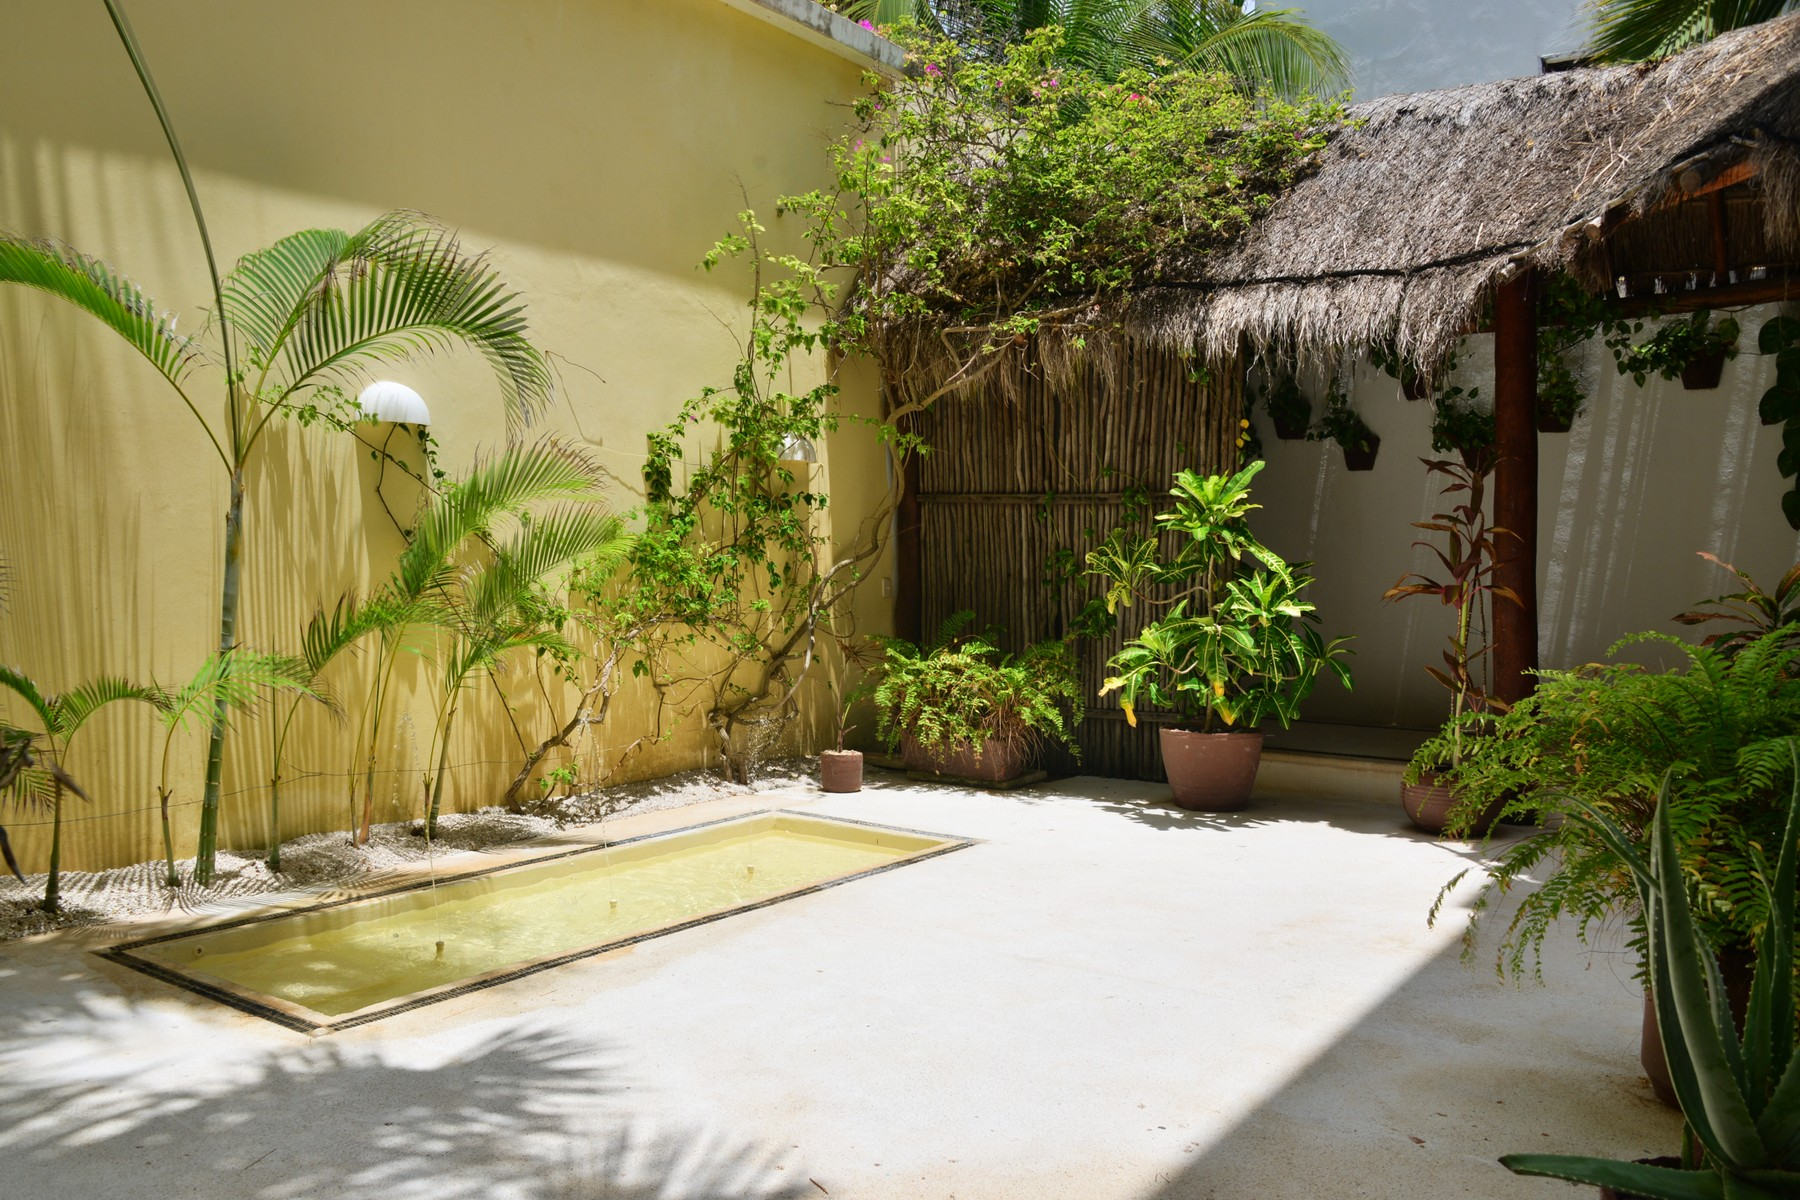 Additional photo for property listing at DEPARTAMENTO # 101 PARAISO FRENTE AL MAR Seafront Paradise – Unit #101 Predio Maria Irene, Supermzna 12, Mzna 21 13 Puerto Morelos, Quintana Roo 77930 México